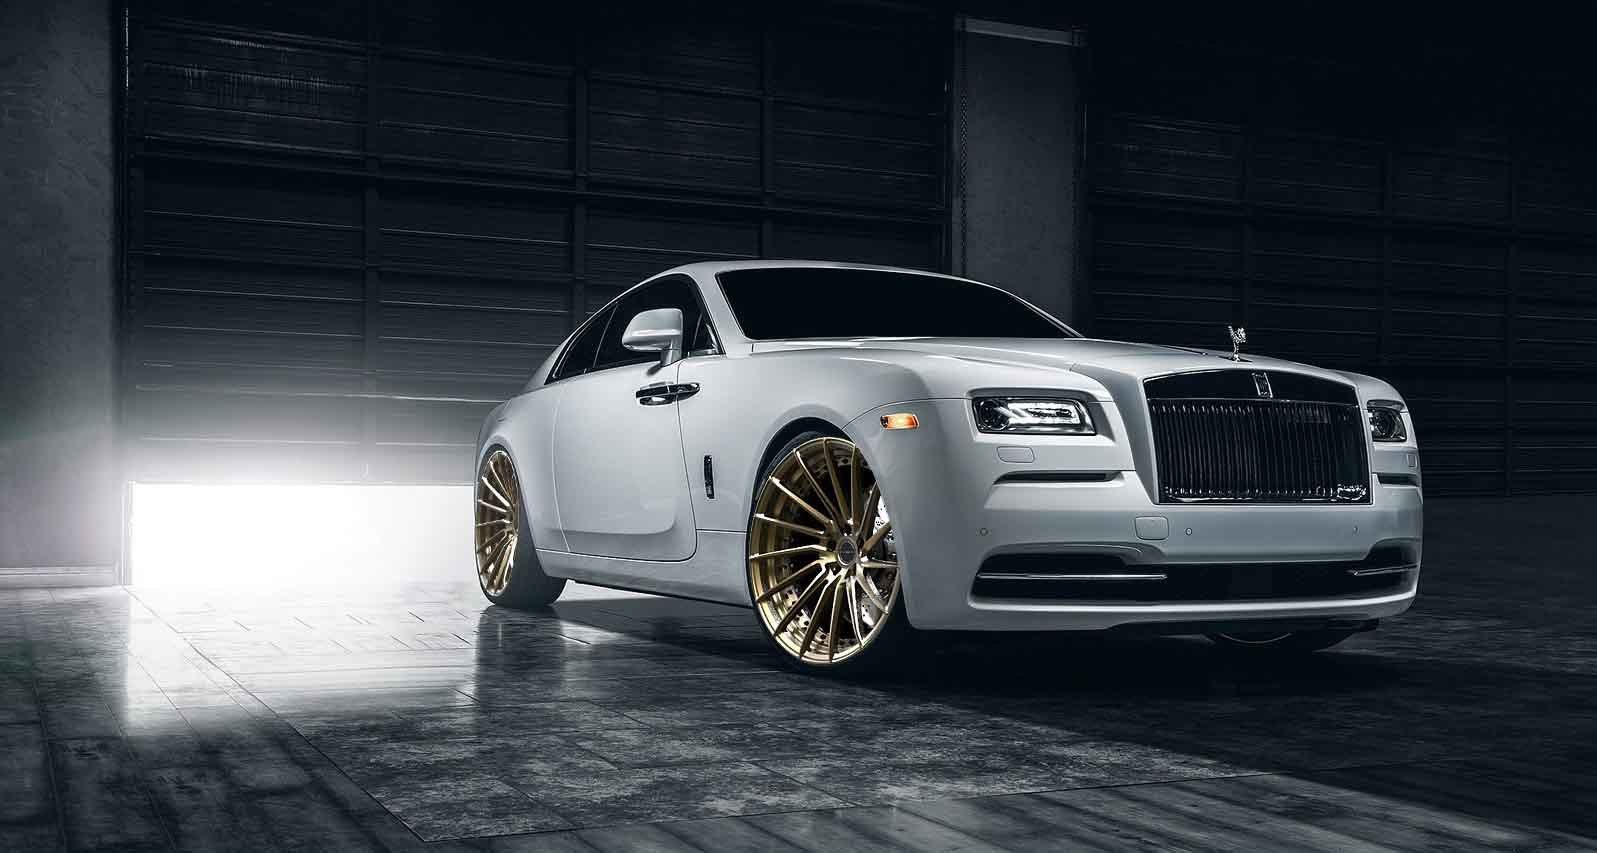 images-products-1-2927-232975215-white-rolls-royce-wraith-brixton-forged-r15-duo-series-wheels-olympic-bronze.jpg